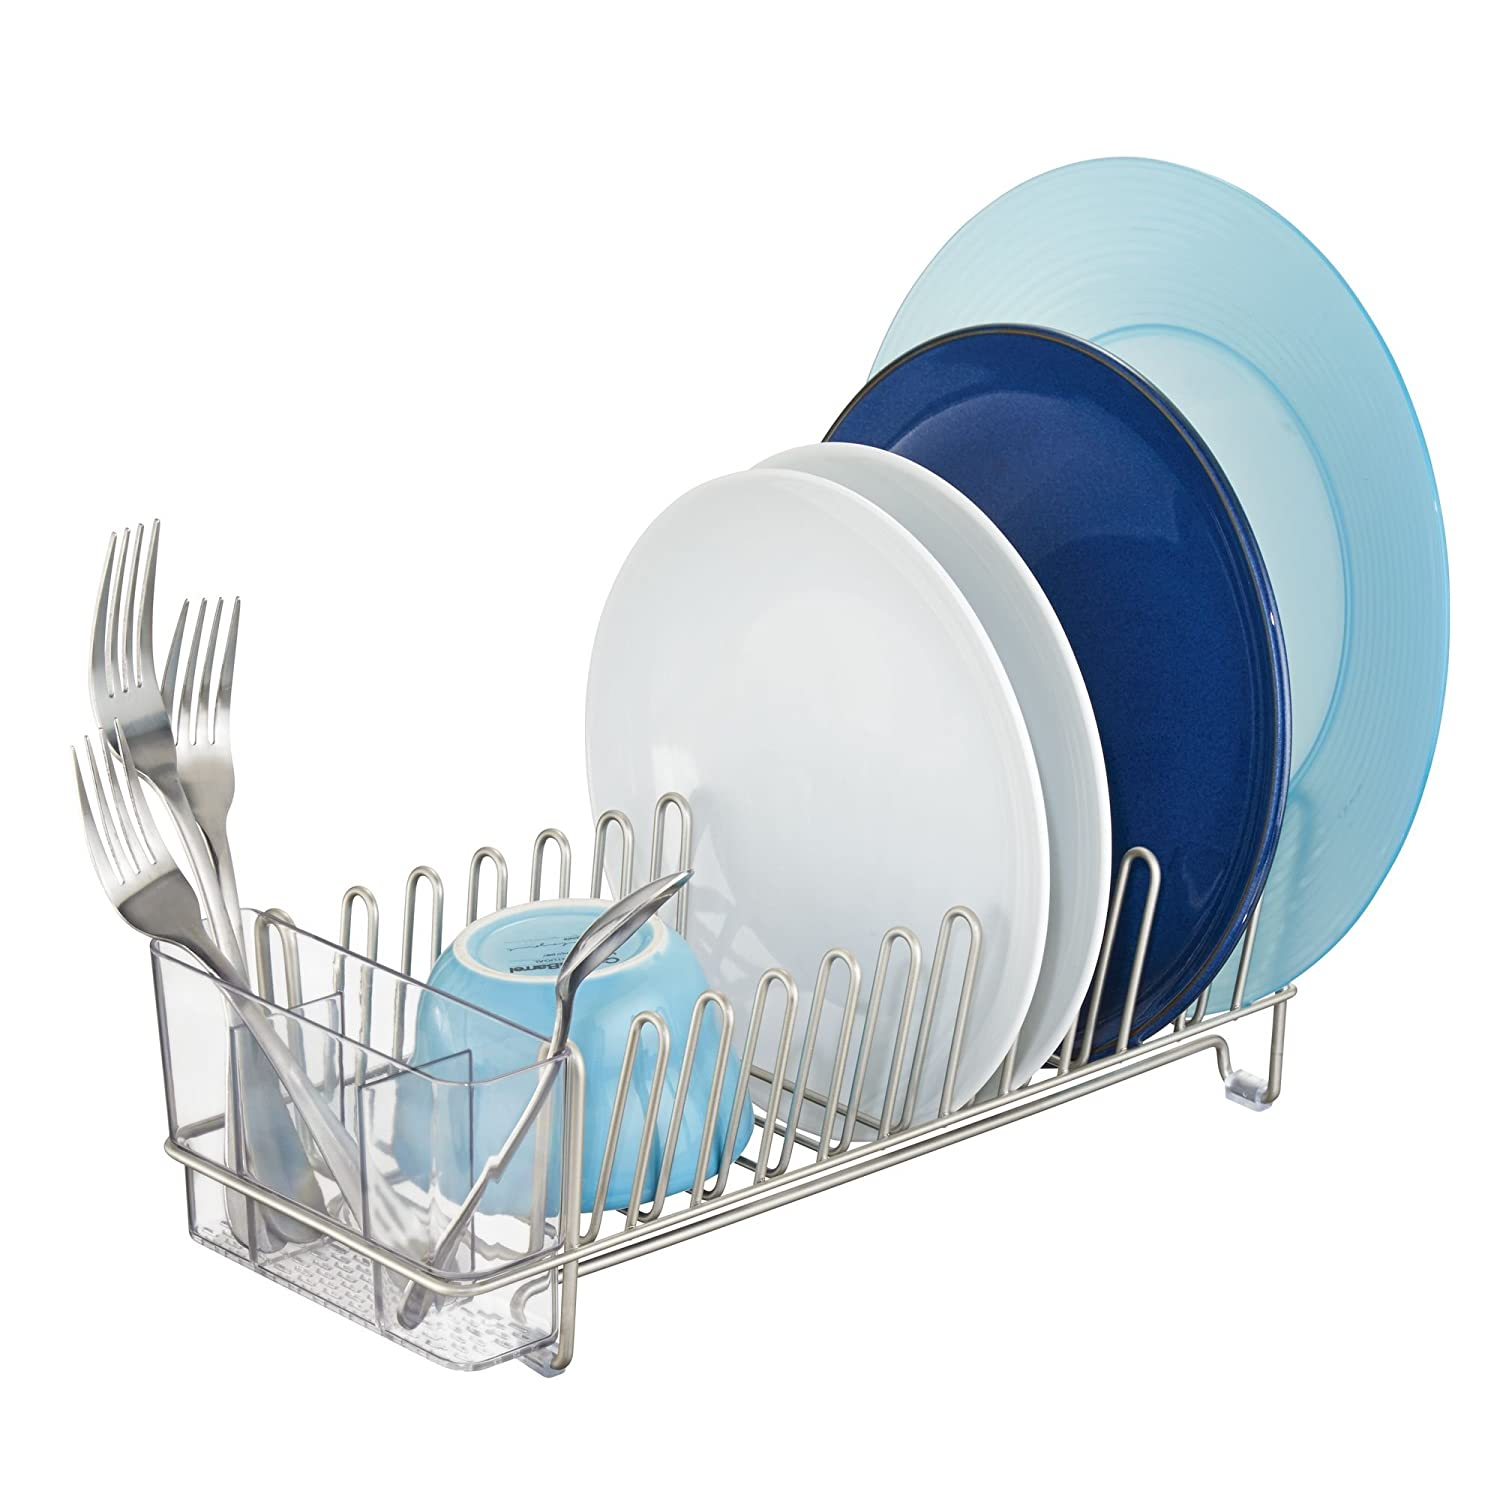 InterDesign Classico Compact Kitchen Dish Drainer Rack for Drying Glasses, Silverware, Bowls, Plates - Satin/Clear 60115